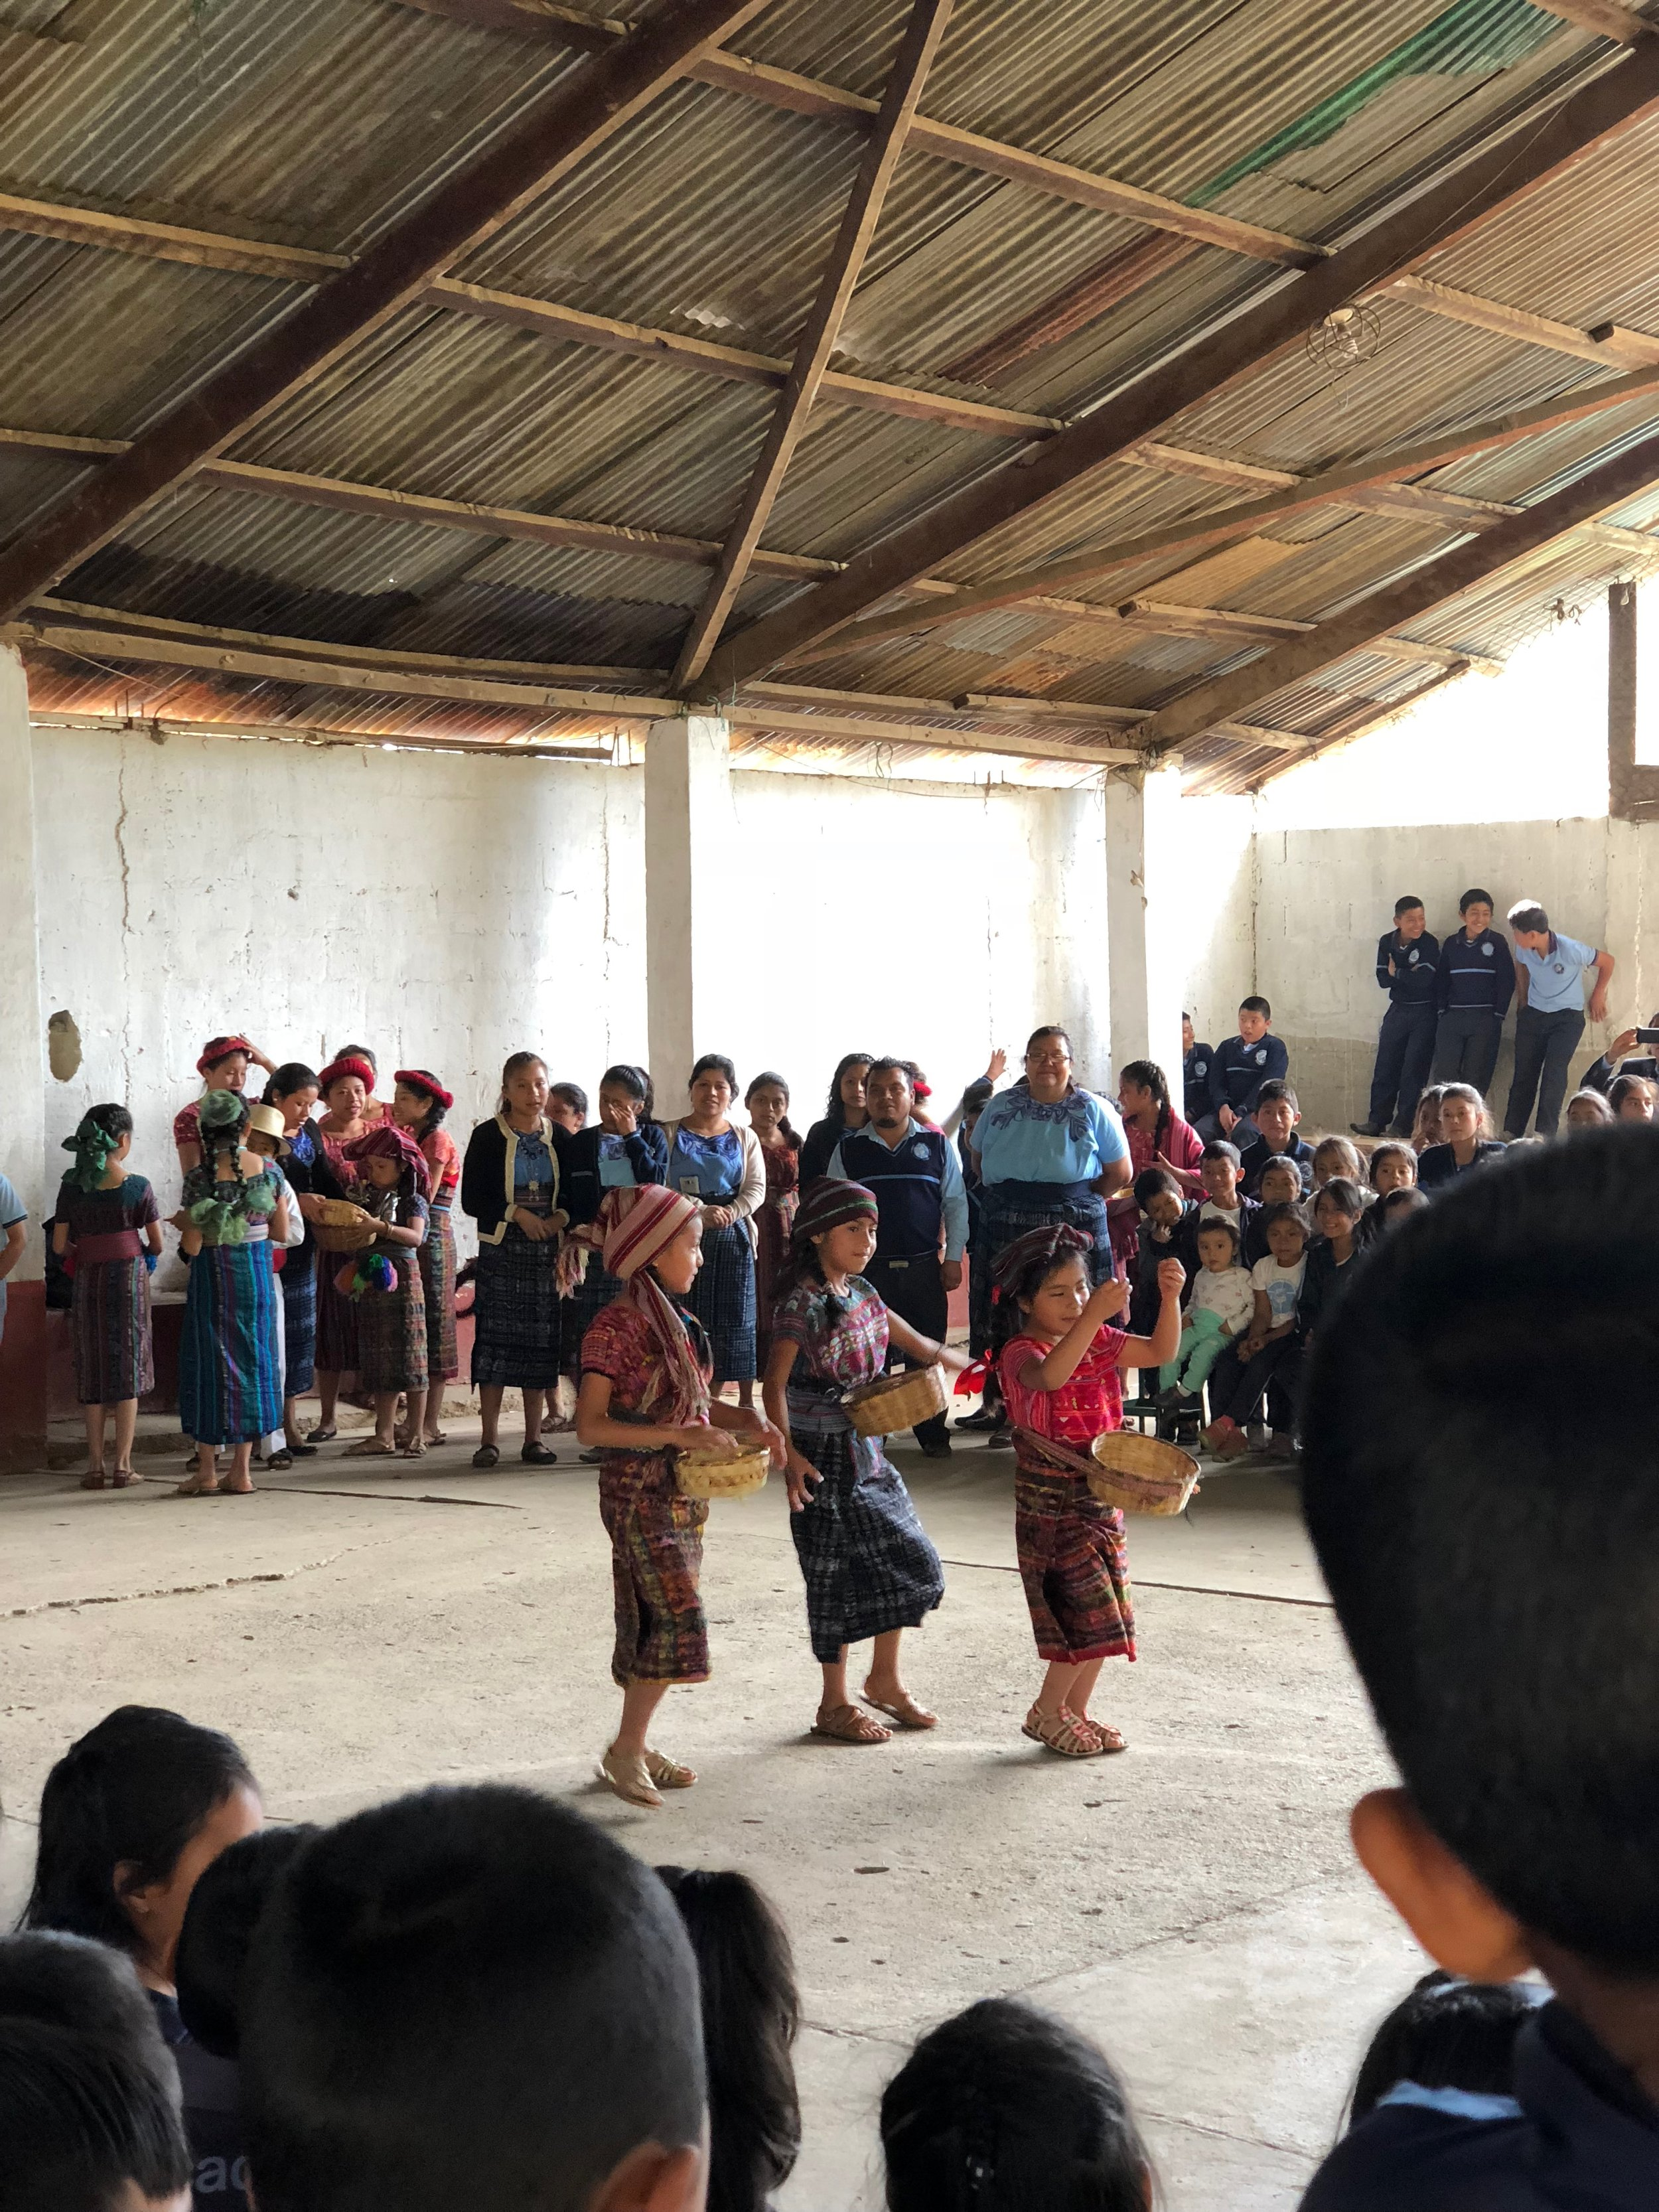 The first day we arrived in Cotzal we met the kids at the school. They welcomed us with sweet dance and presentation to show us how coffee is farmed. At the end they thanked us for coming by giving us all a bag of coffee to take home!